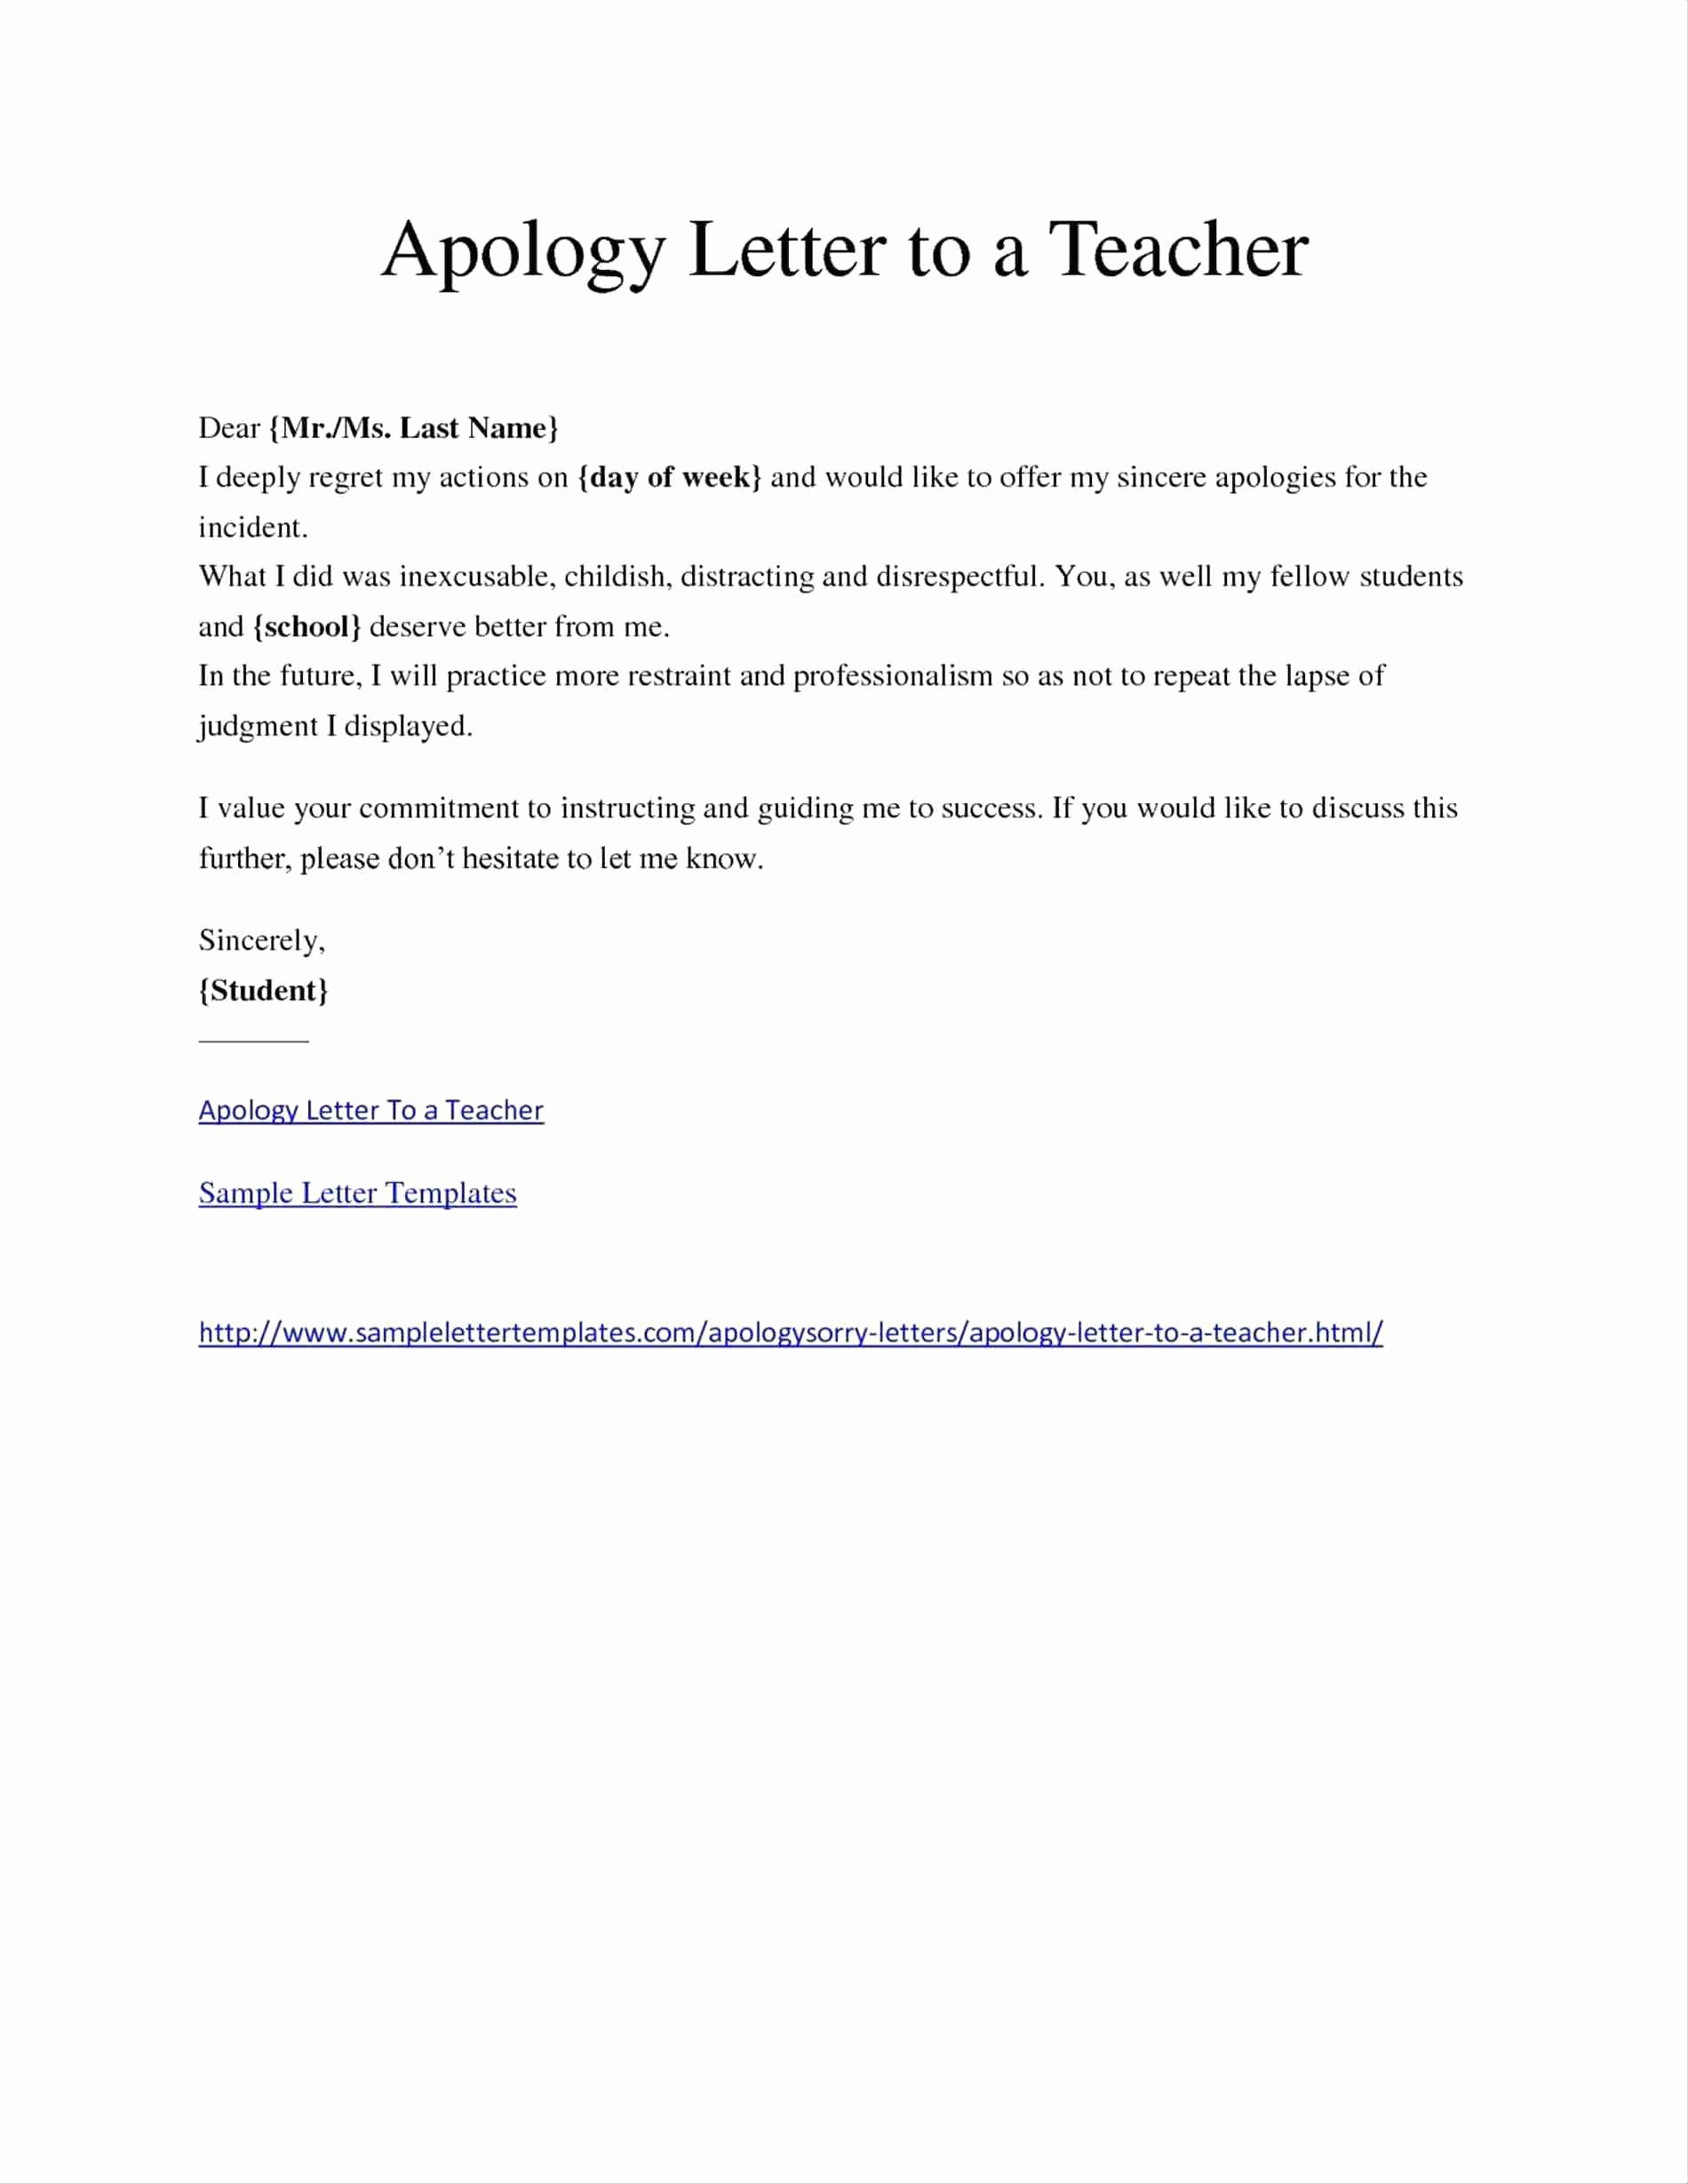 Sample Absent Letter to Teacher Lovely Letter Absent From School Apology to Teacher for Absence